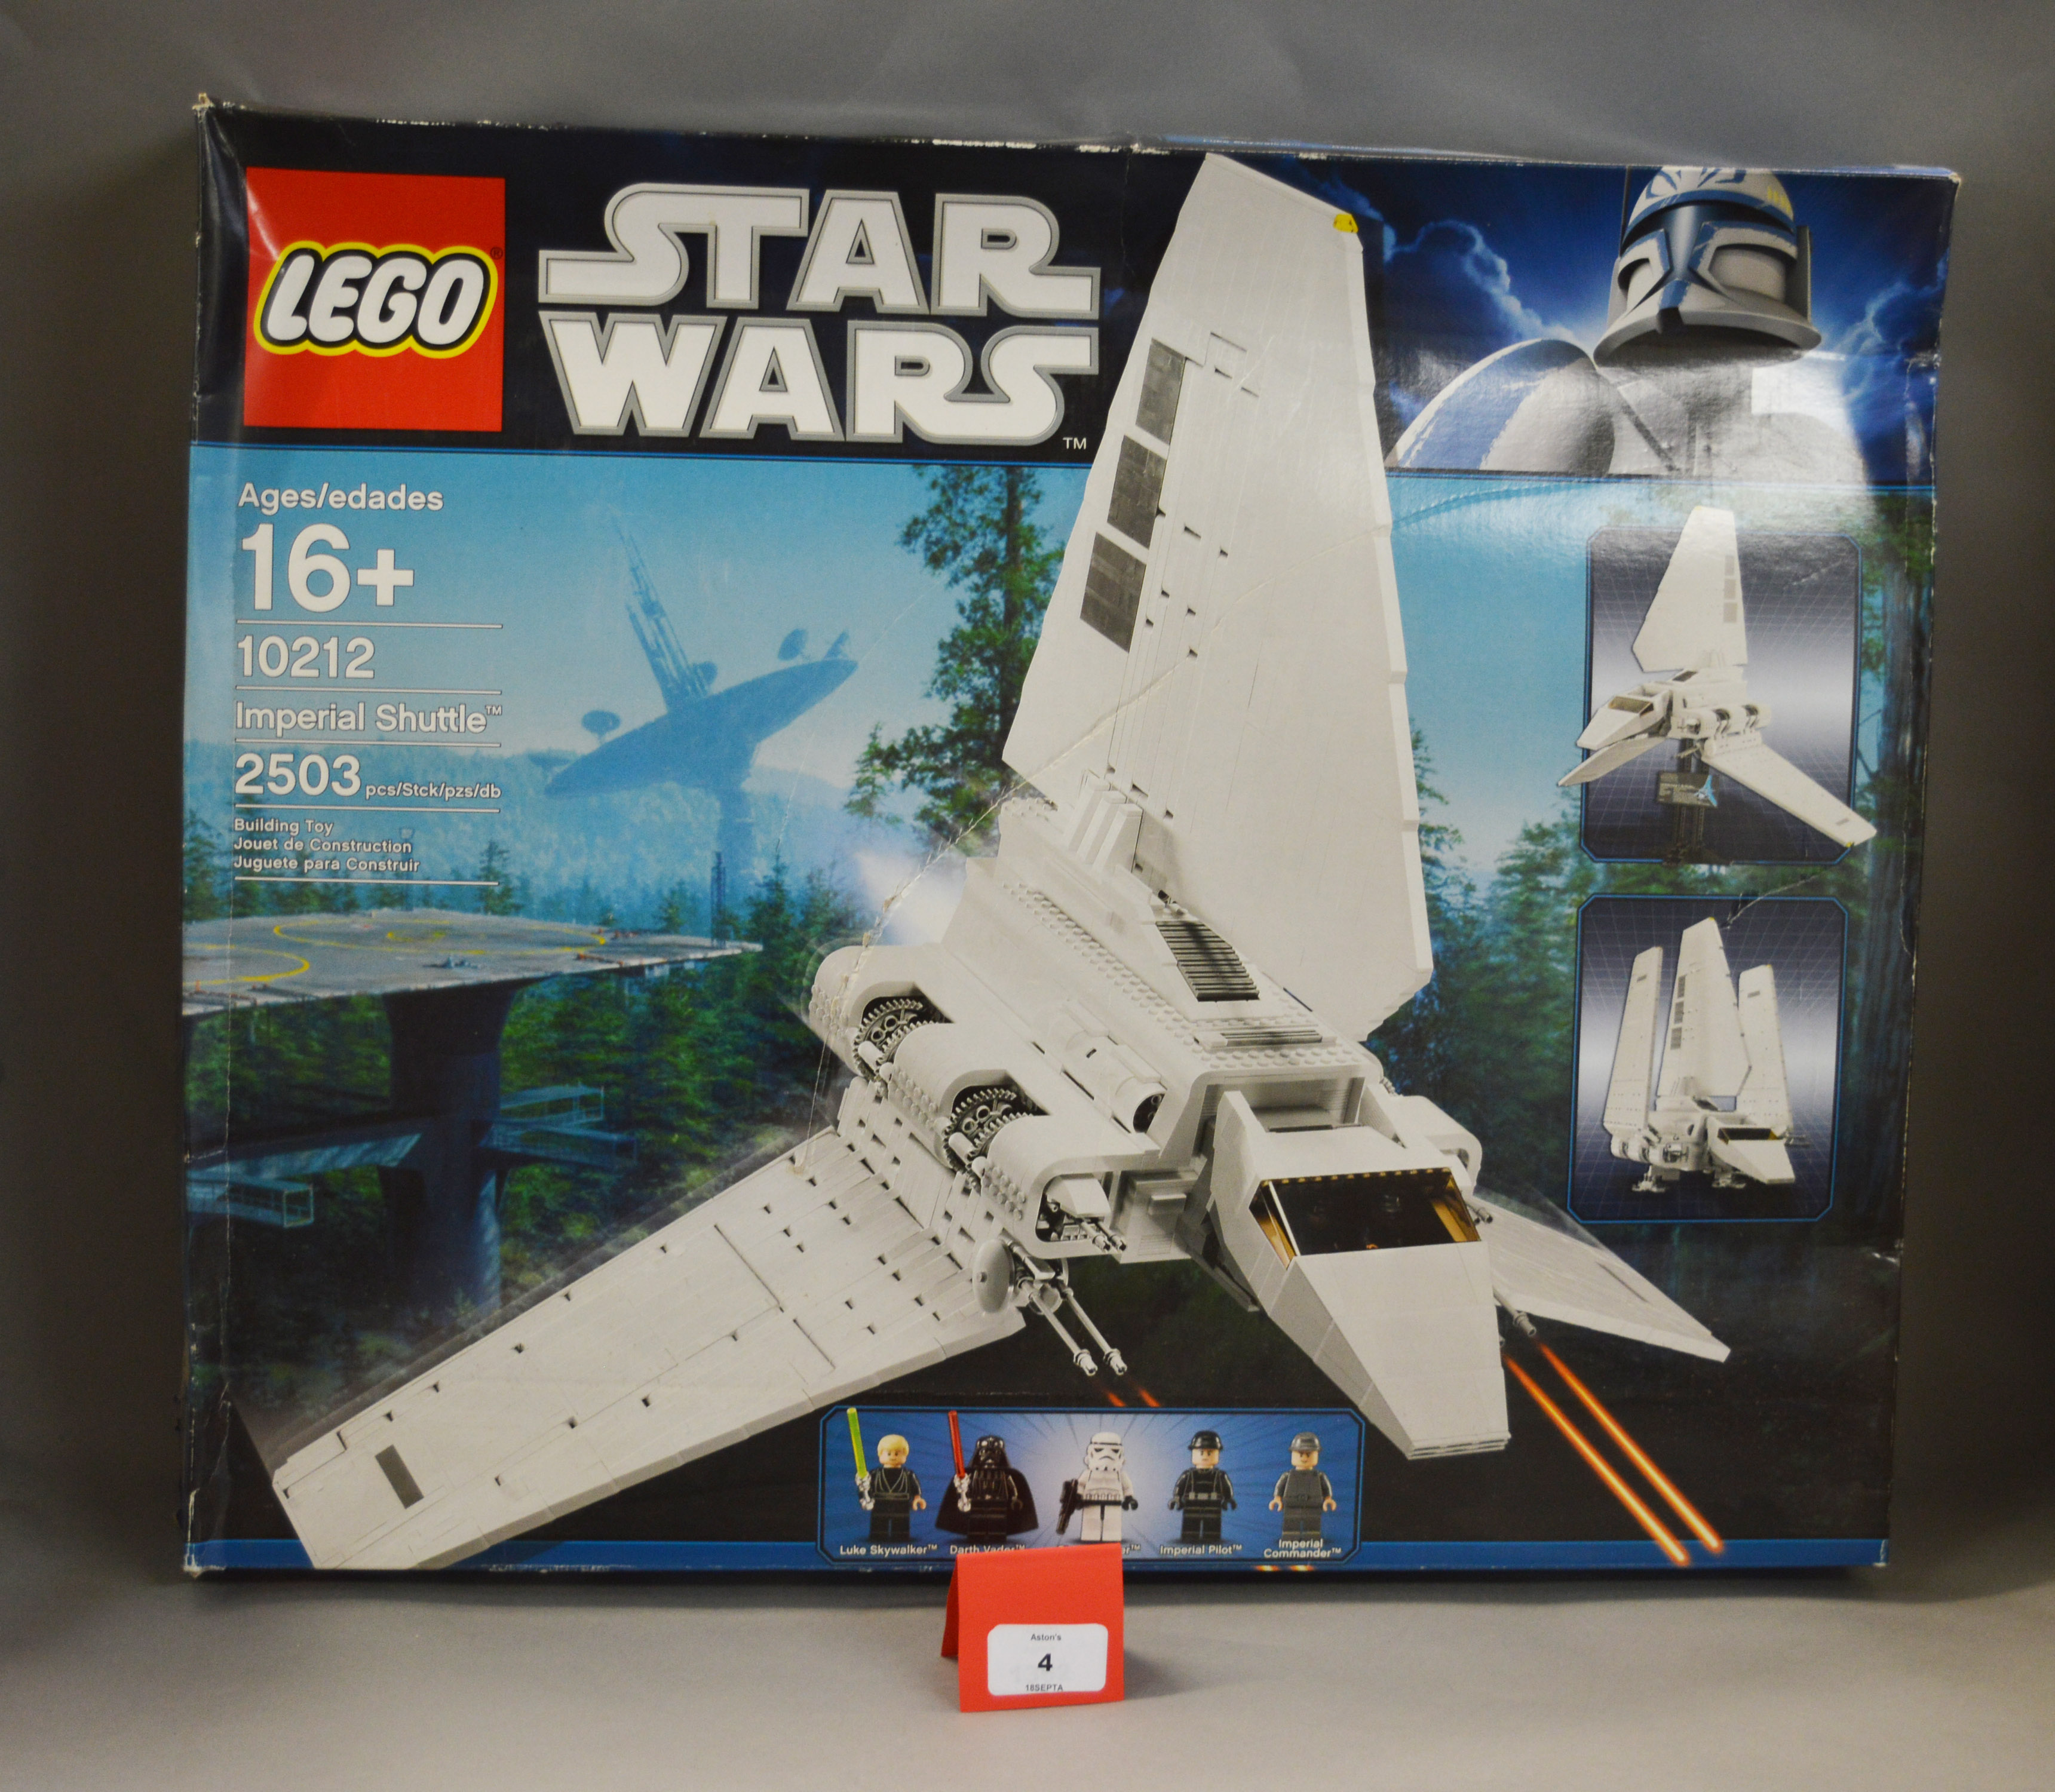 Lot 4 - Lego Star Wars 10212 Imperial Shuttle. Appears unopened in G box.